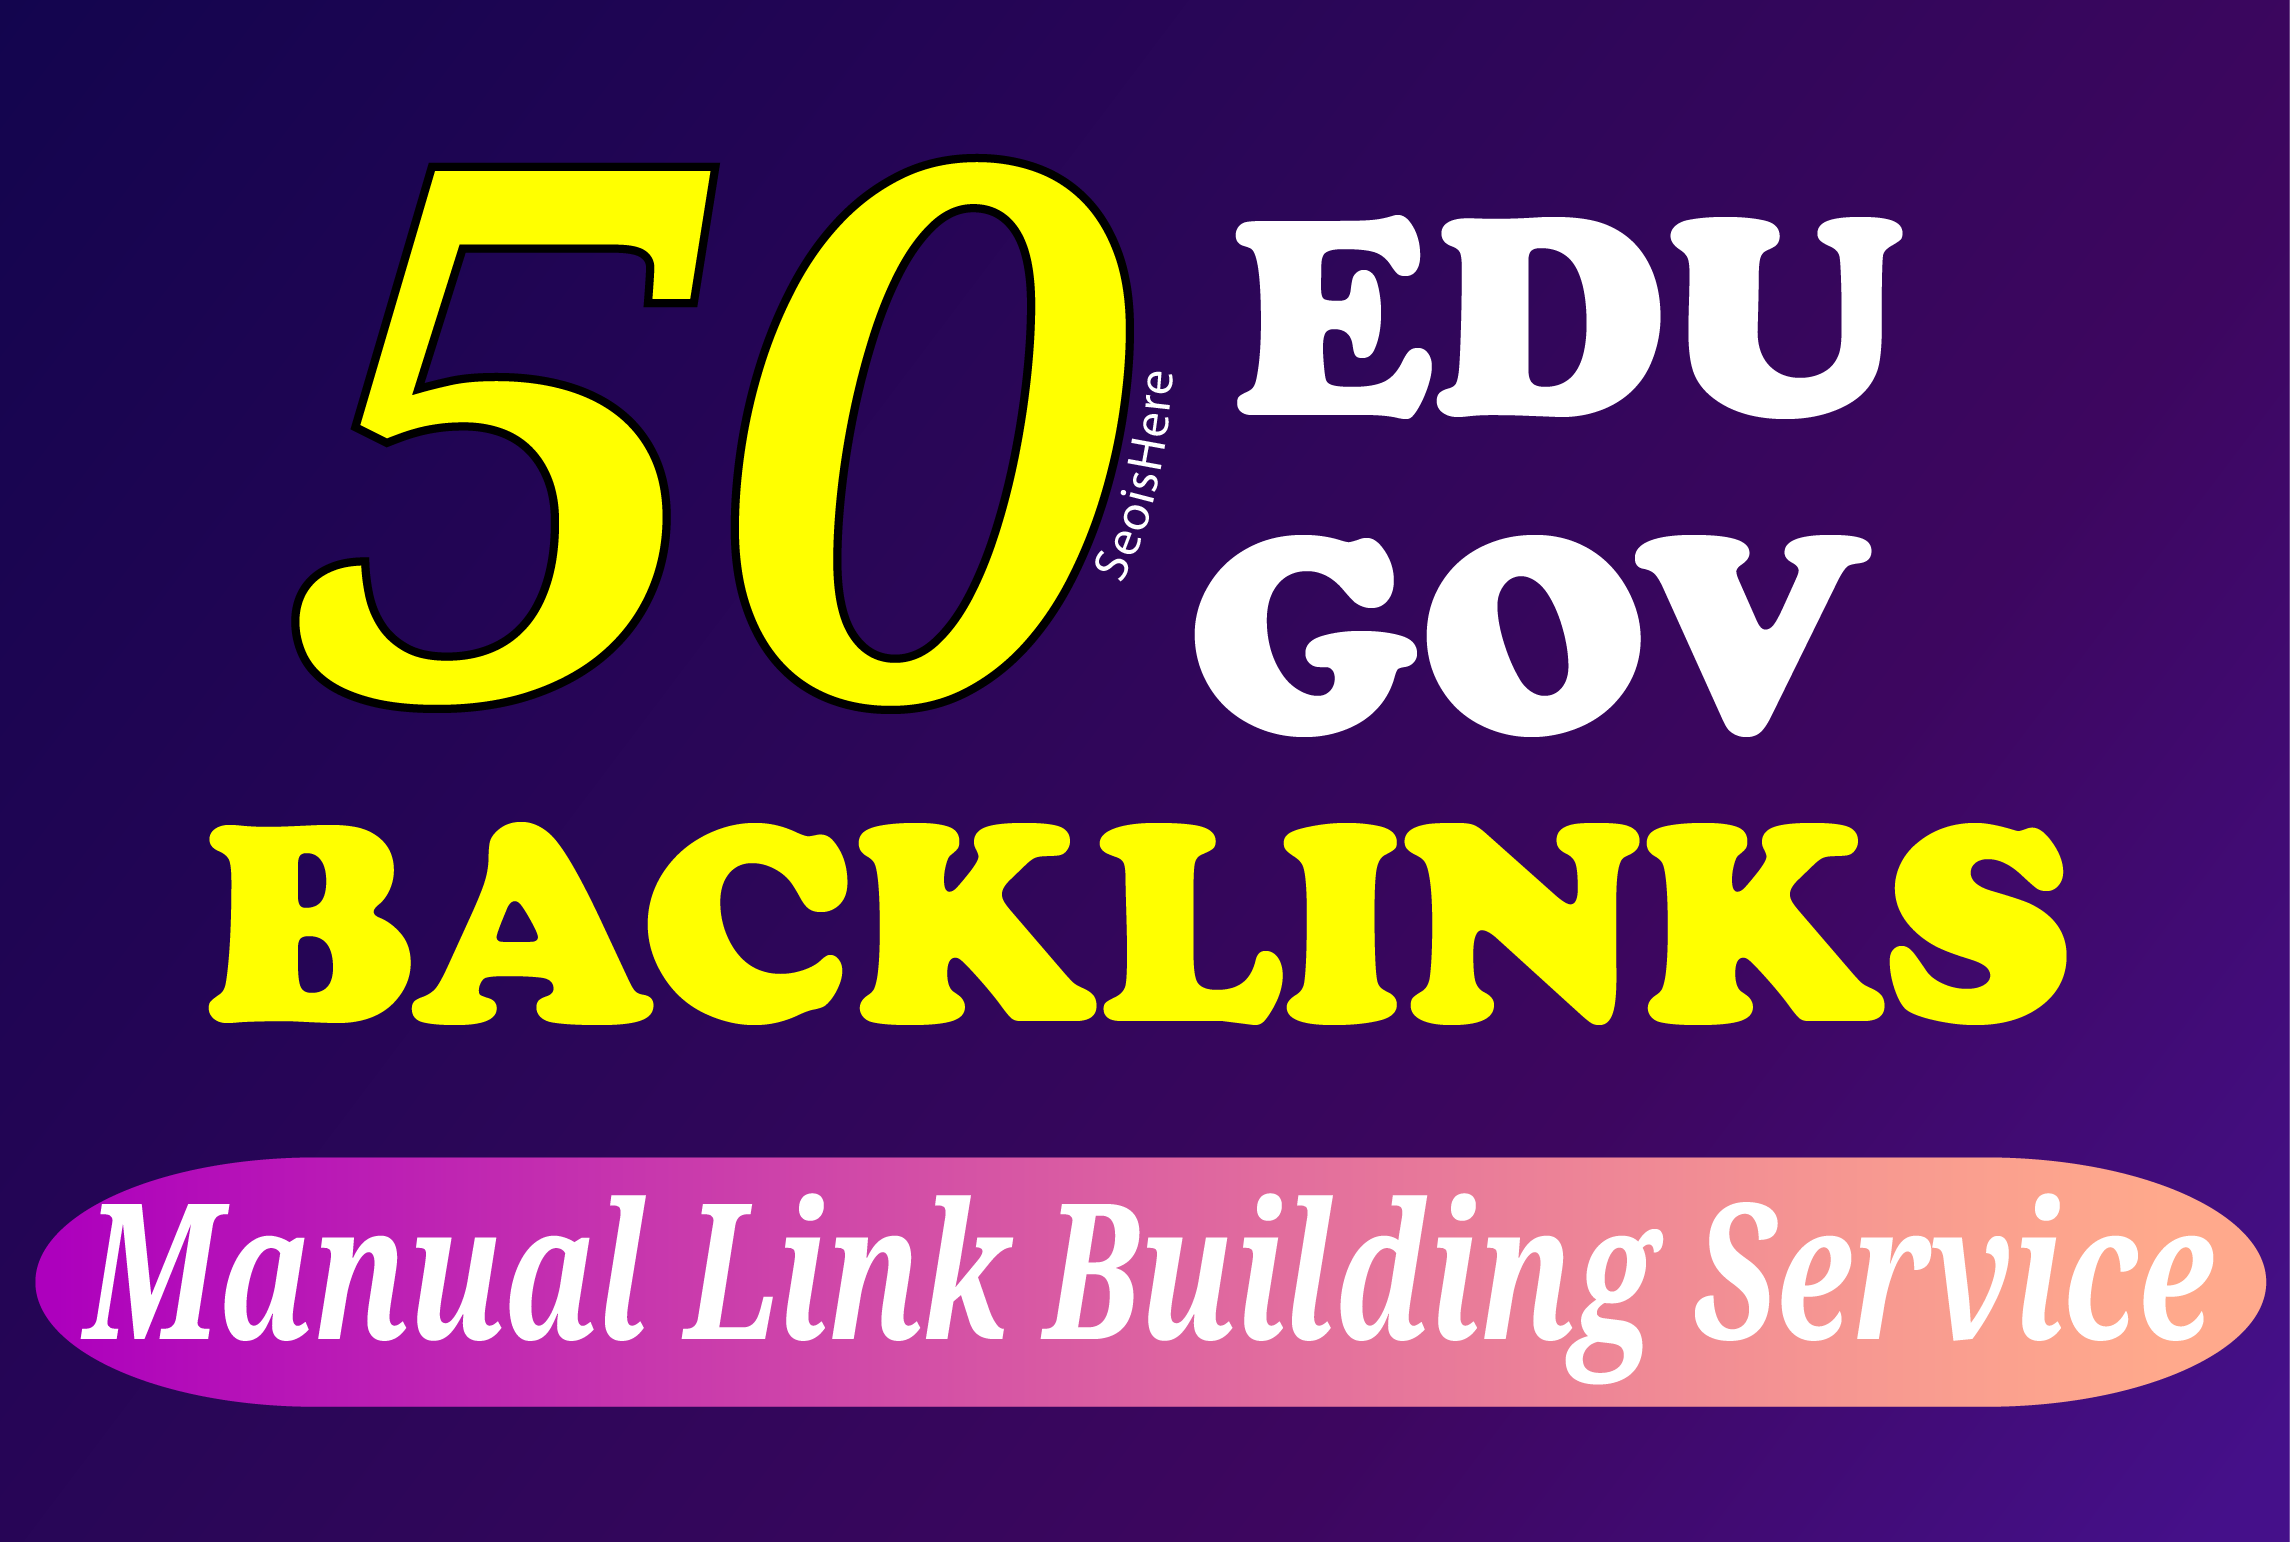 I will manually build 30 DA90+ and 20 Edu/Gov backlinks white hat SEO link building